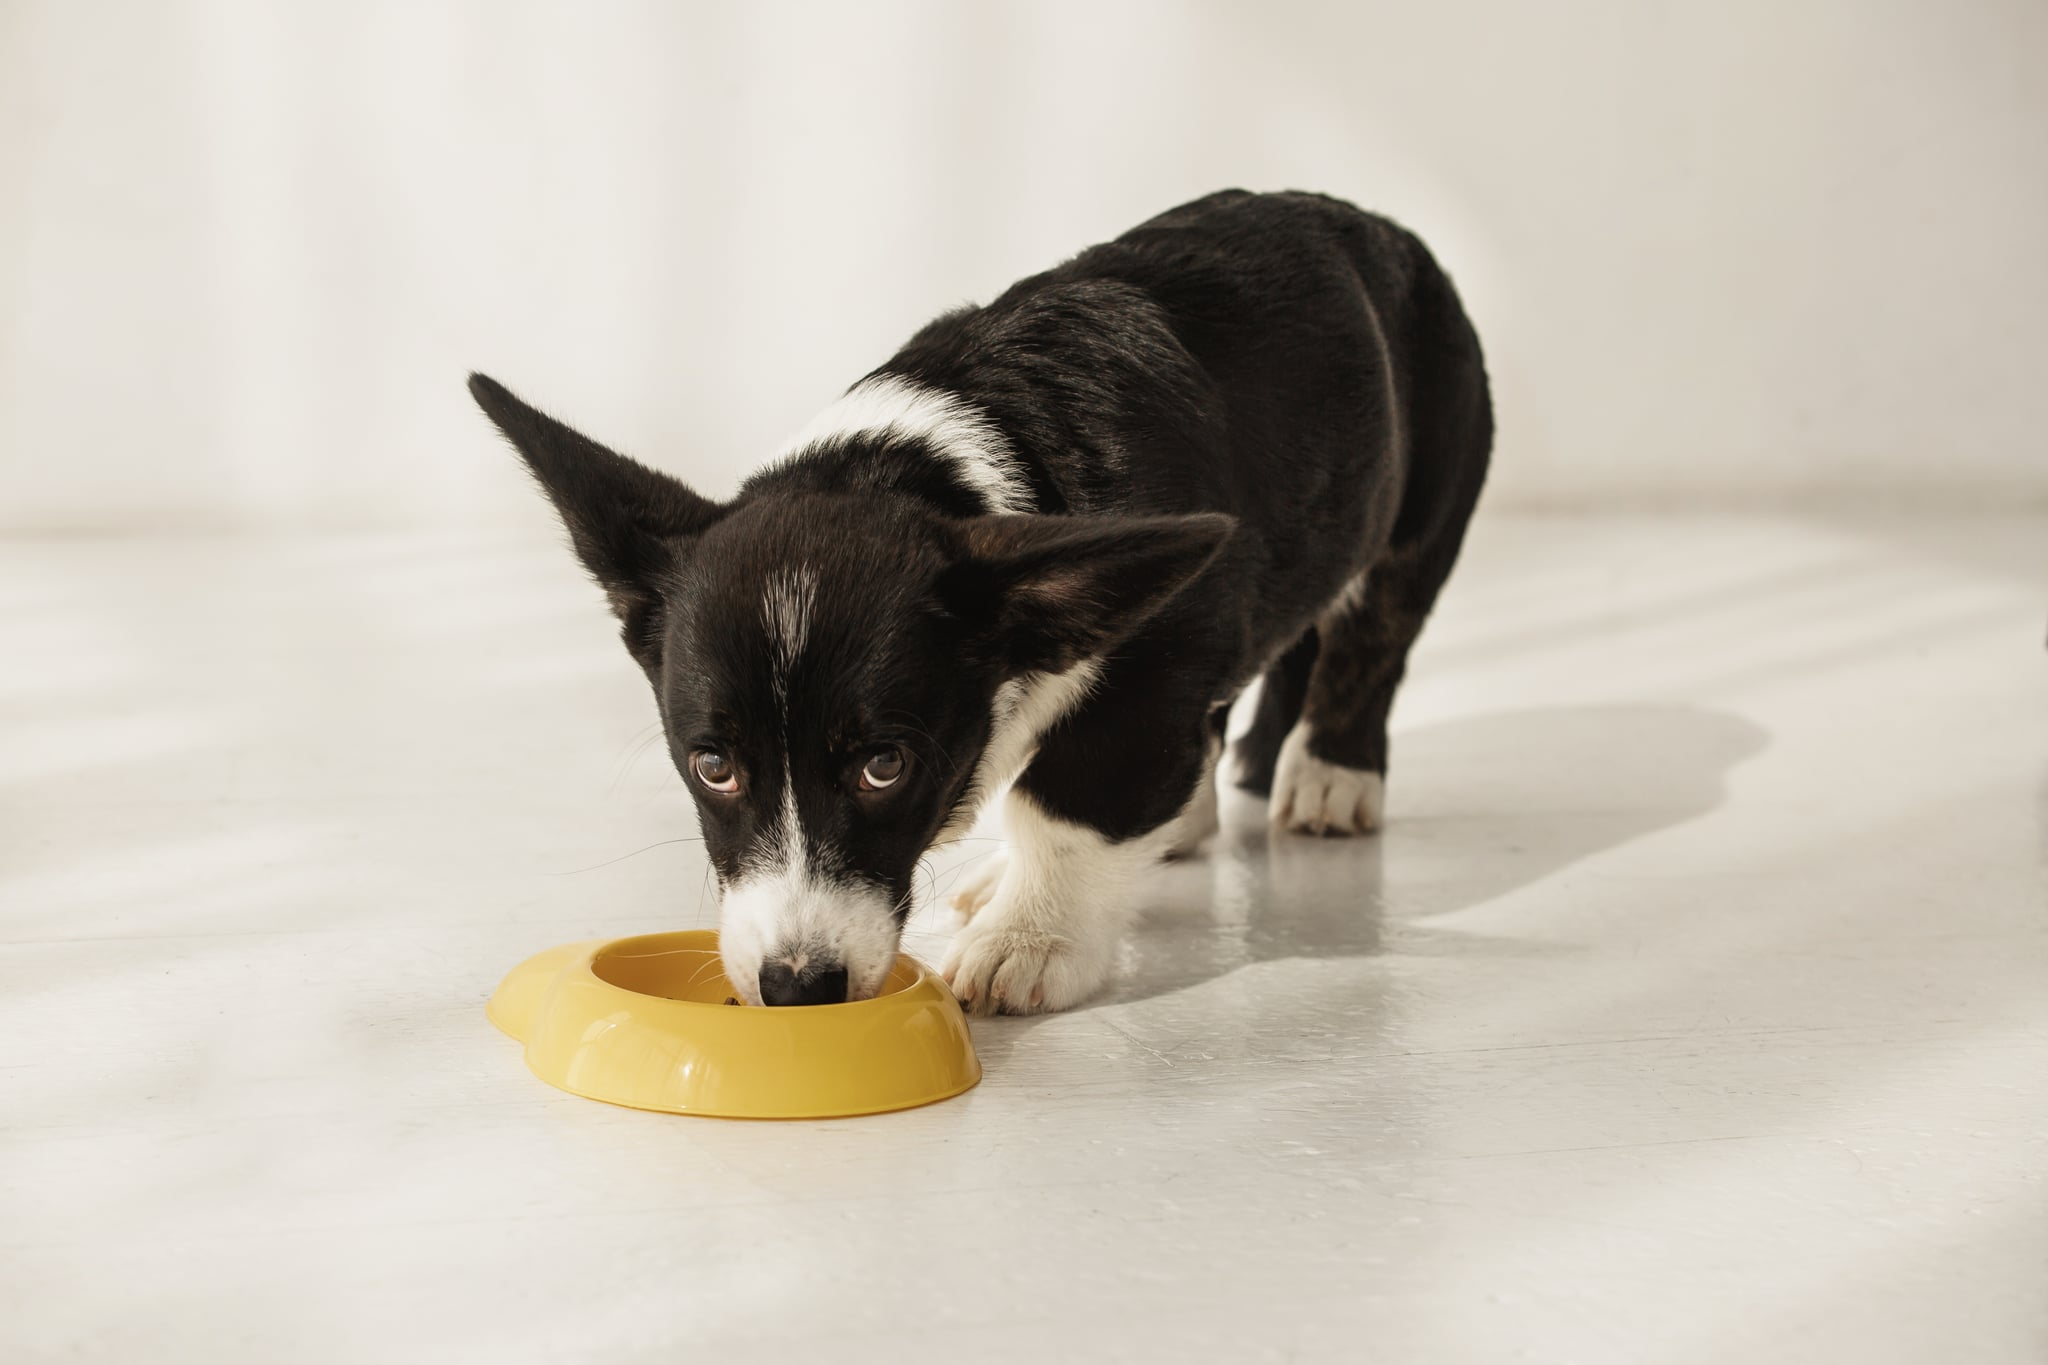 Portrait of black and white corgi eating from bowl on a floor in light room